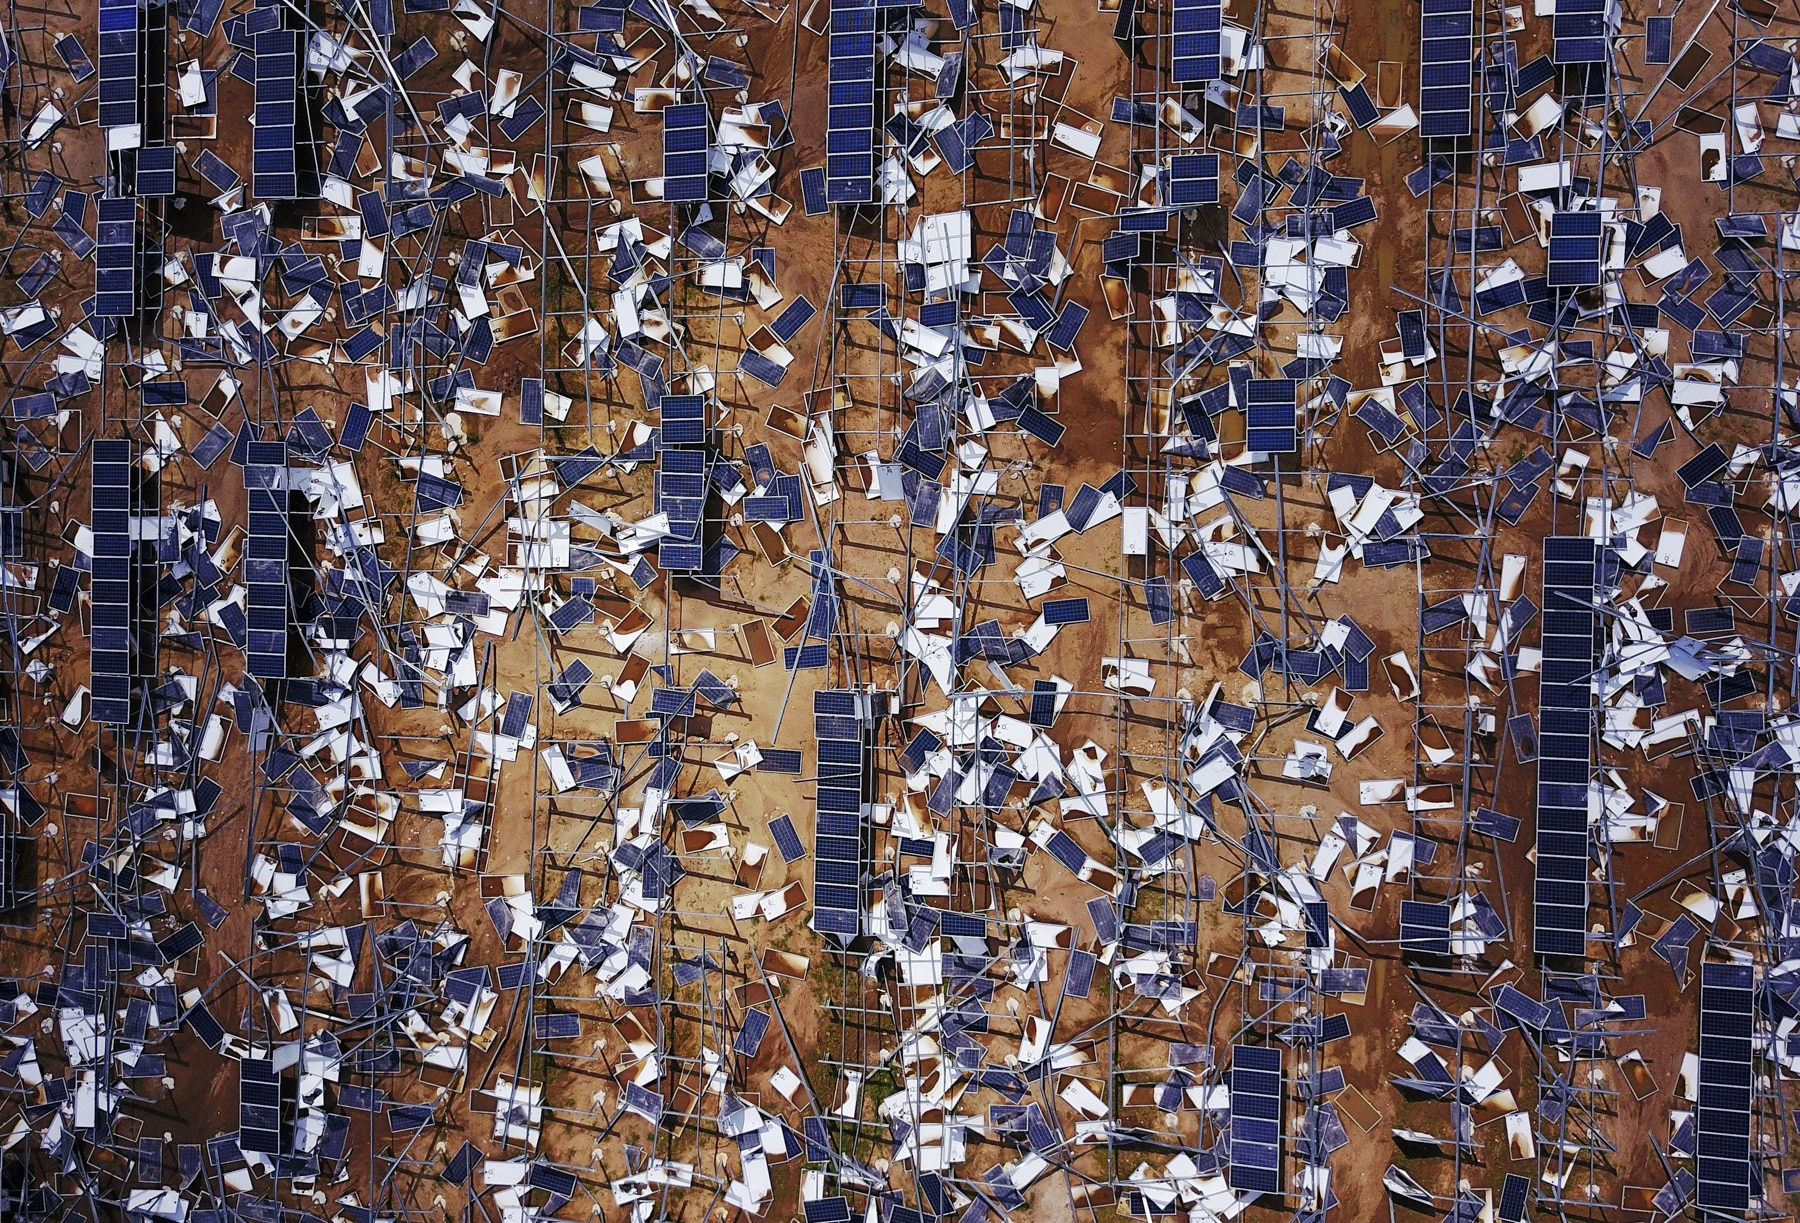 Aerial view of damaged solar panels scattered in field in Puerto Rico (© Ricardo Arduengo/AFP via Getty Images)